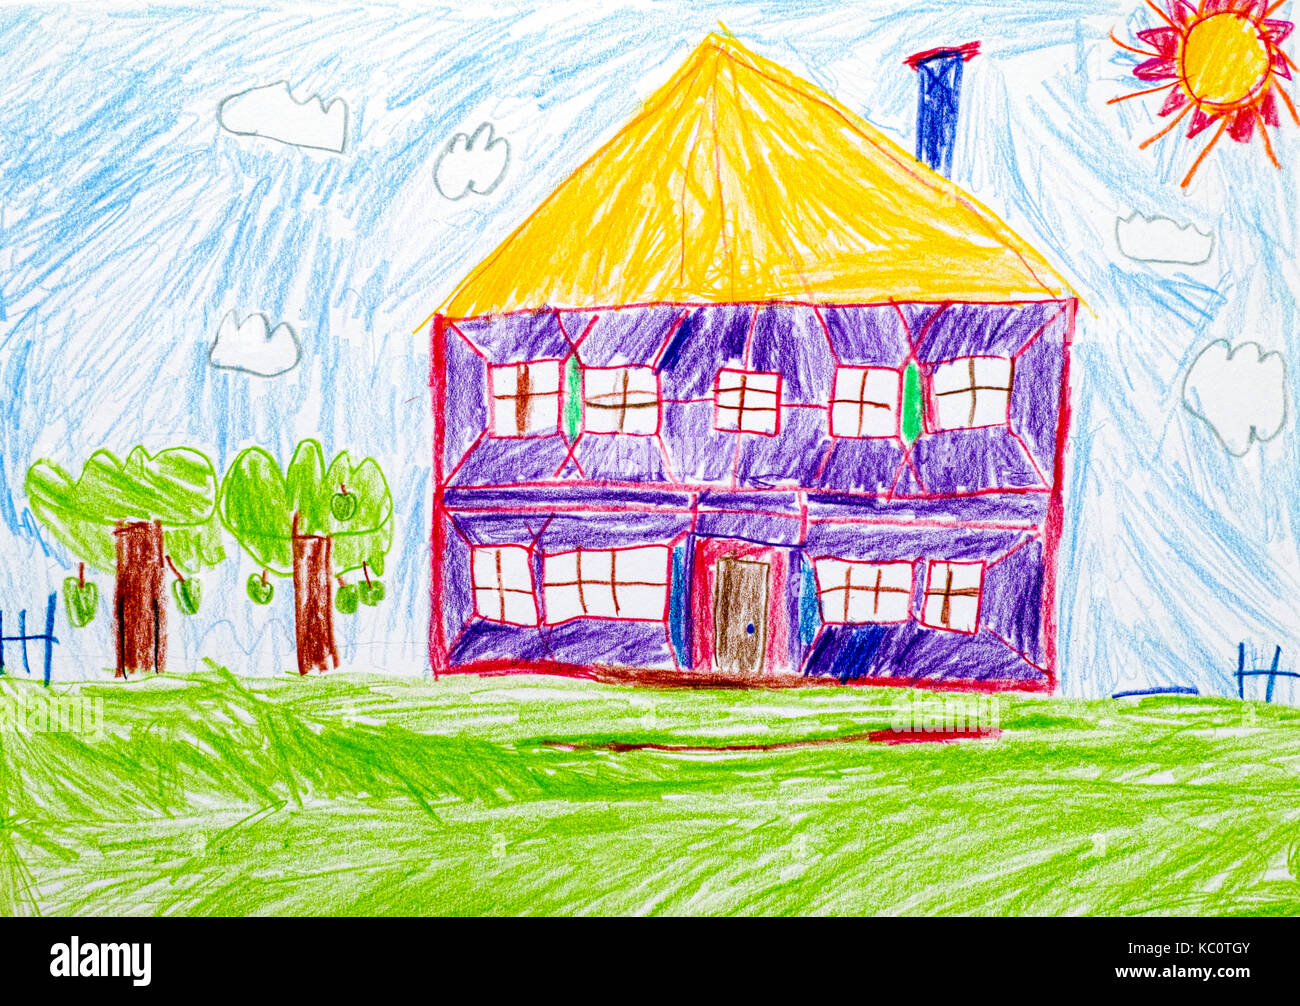 Kids Drawing House Stock Photos Amp Kids Drawing House Stock Images